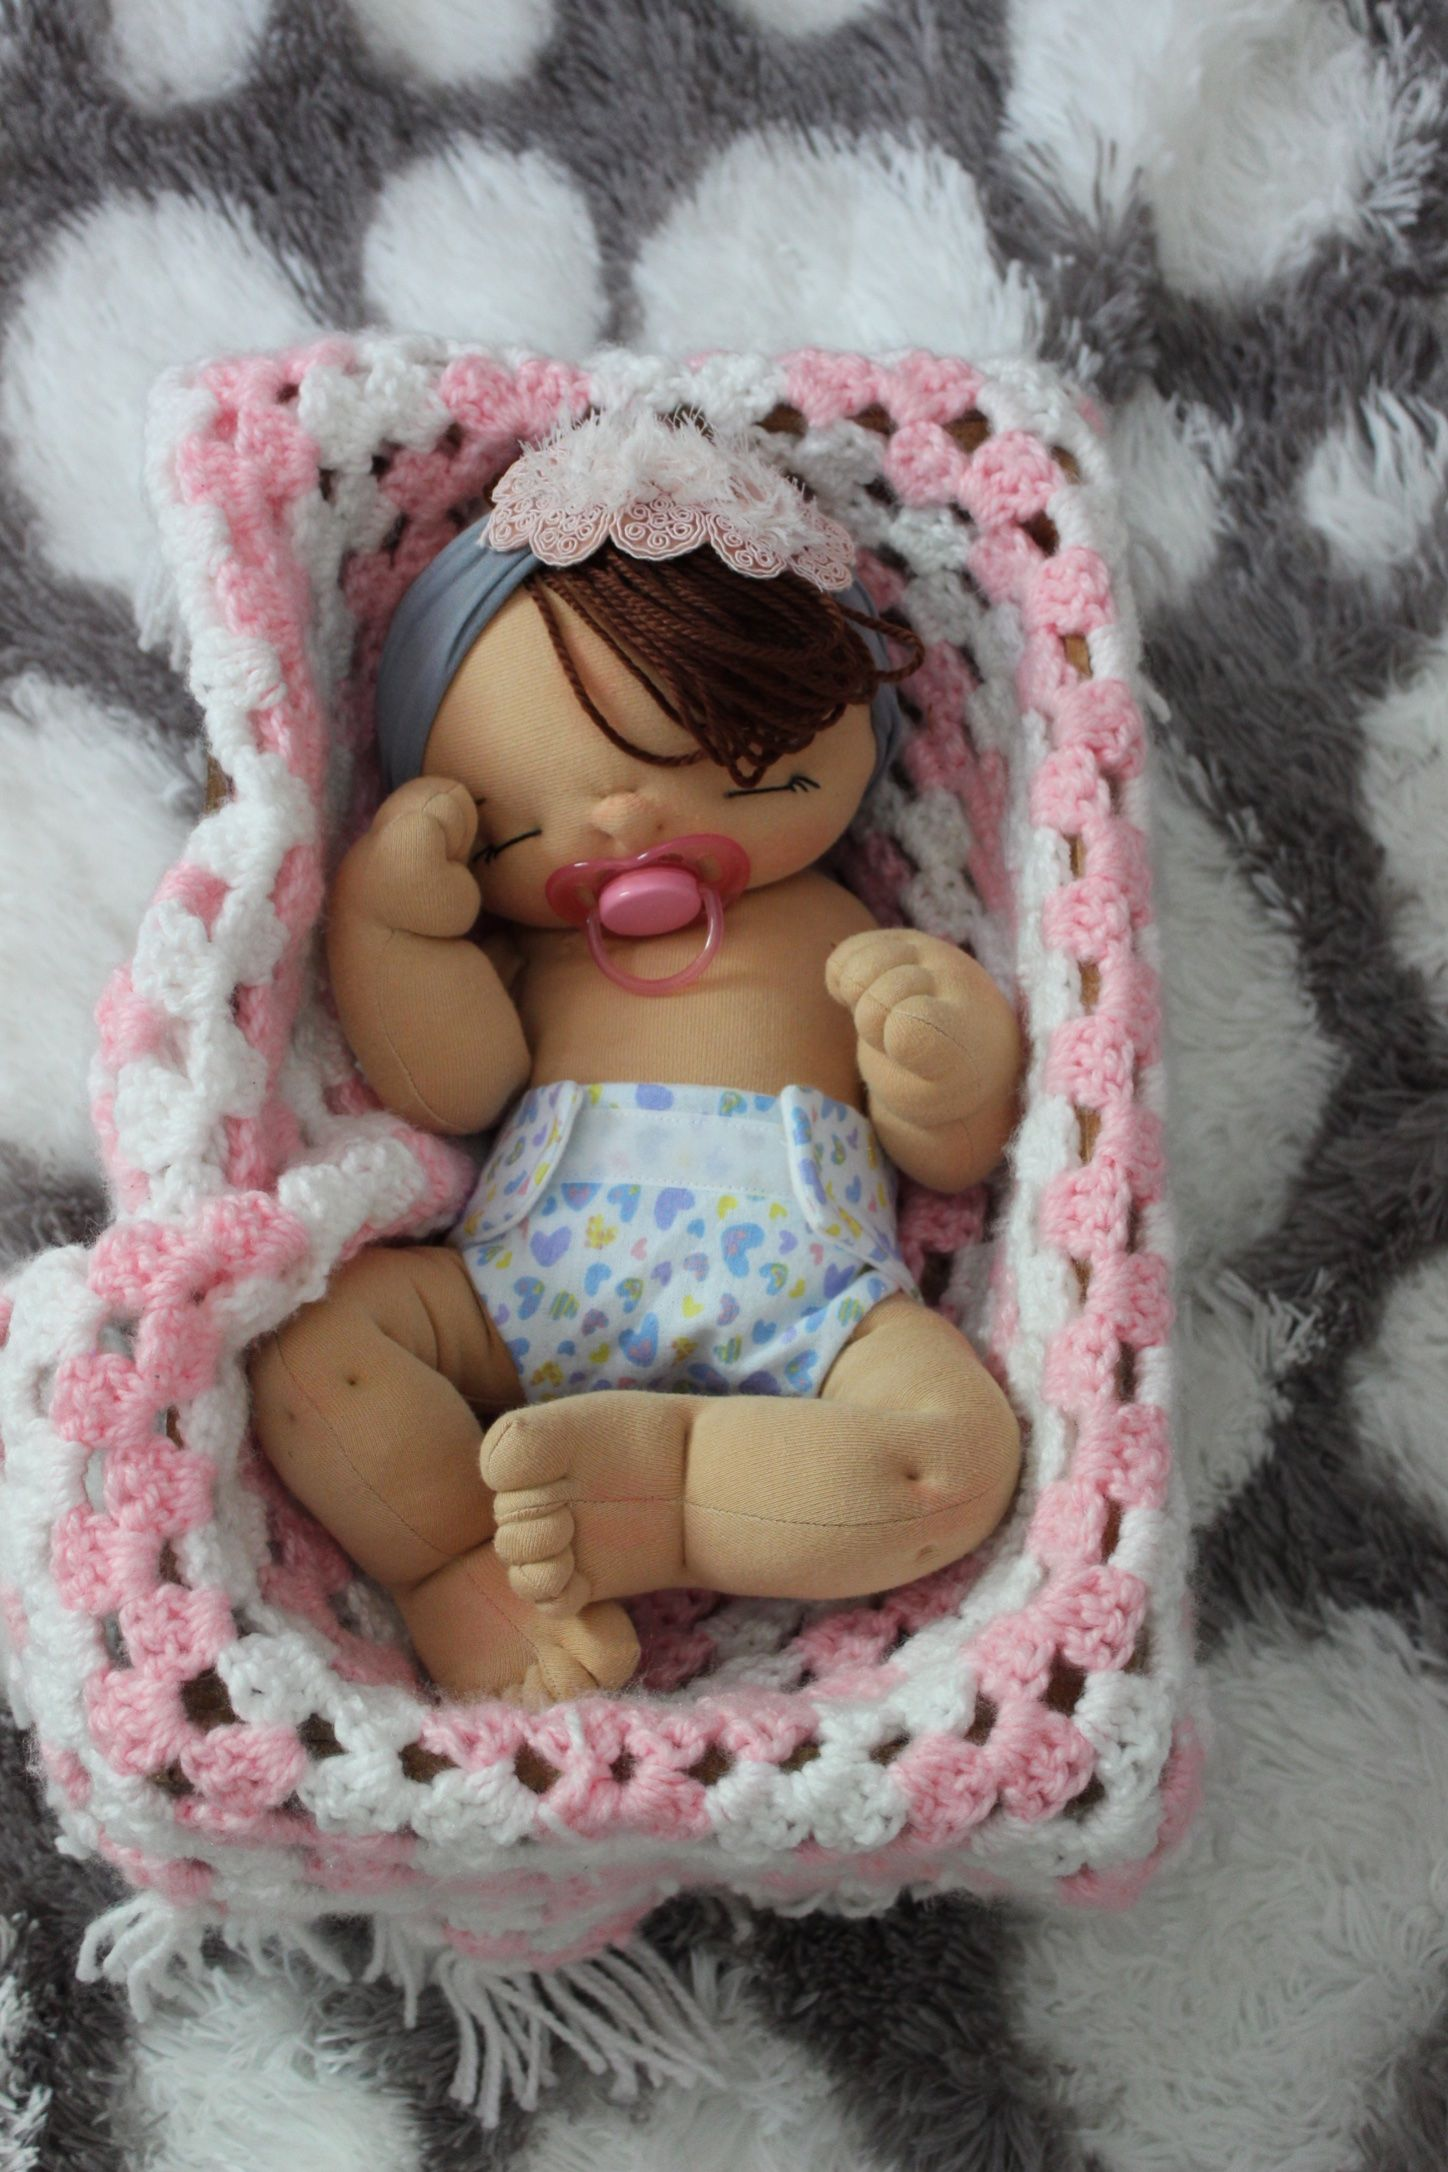 Custom preemie size cloth baby doll by Aubrey Barbosa from La